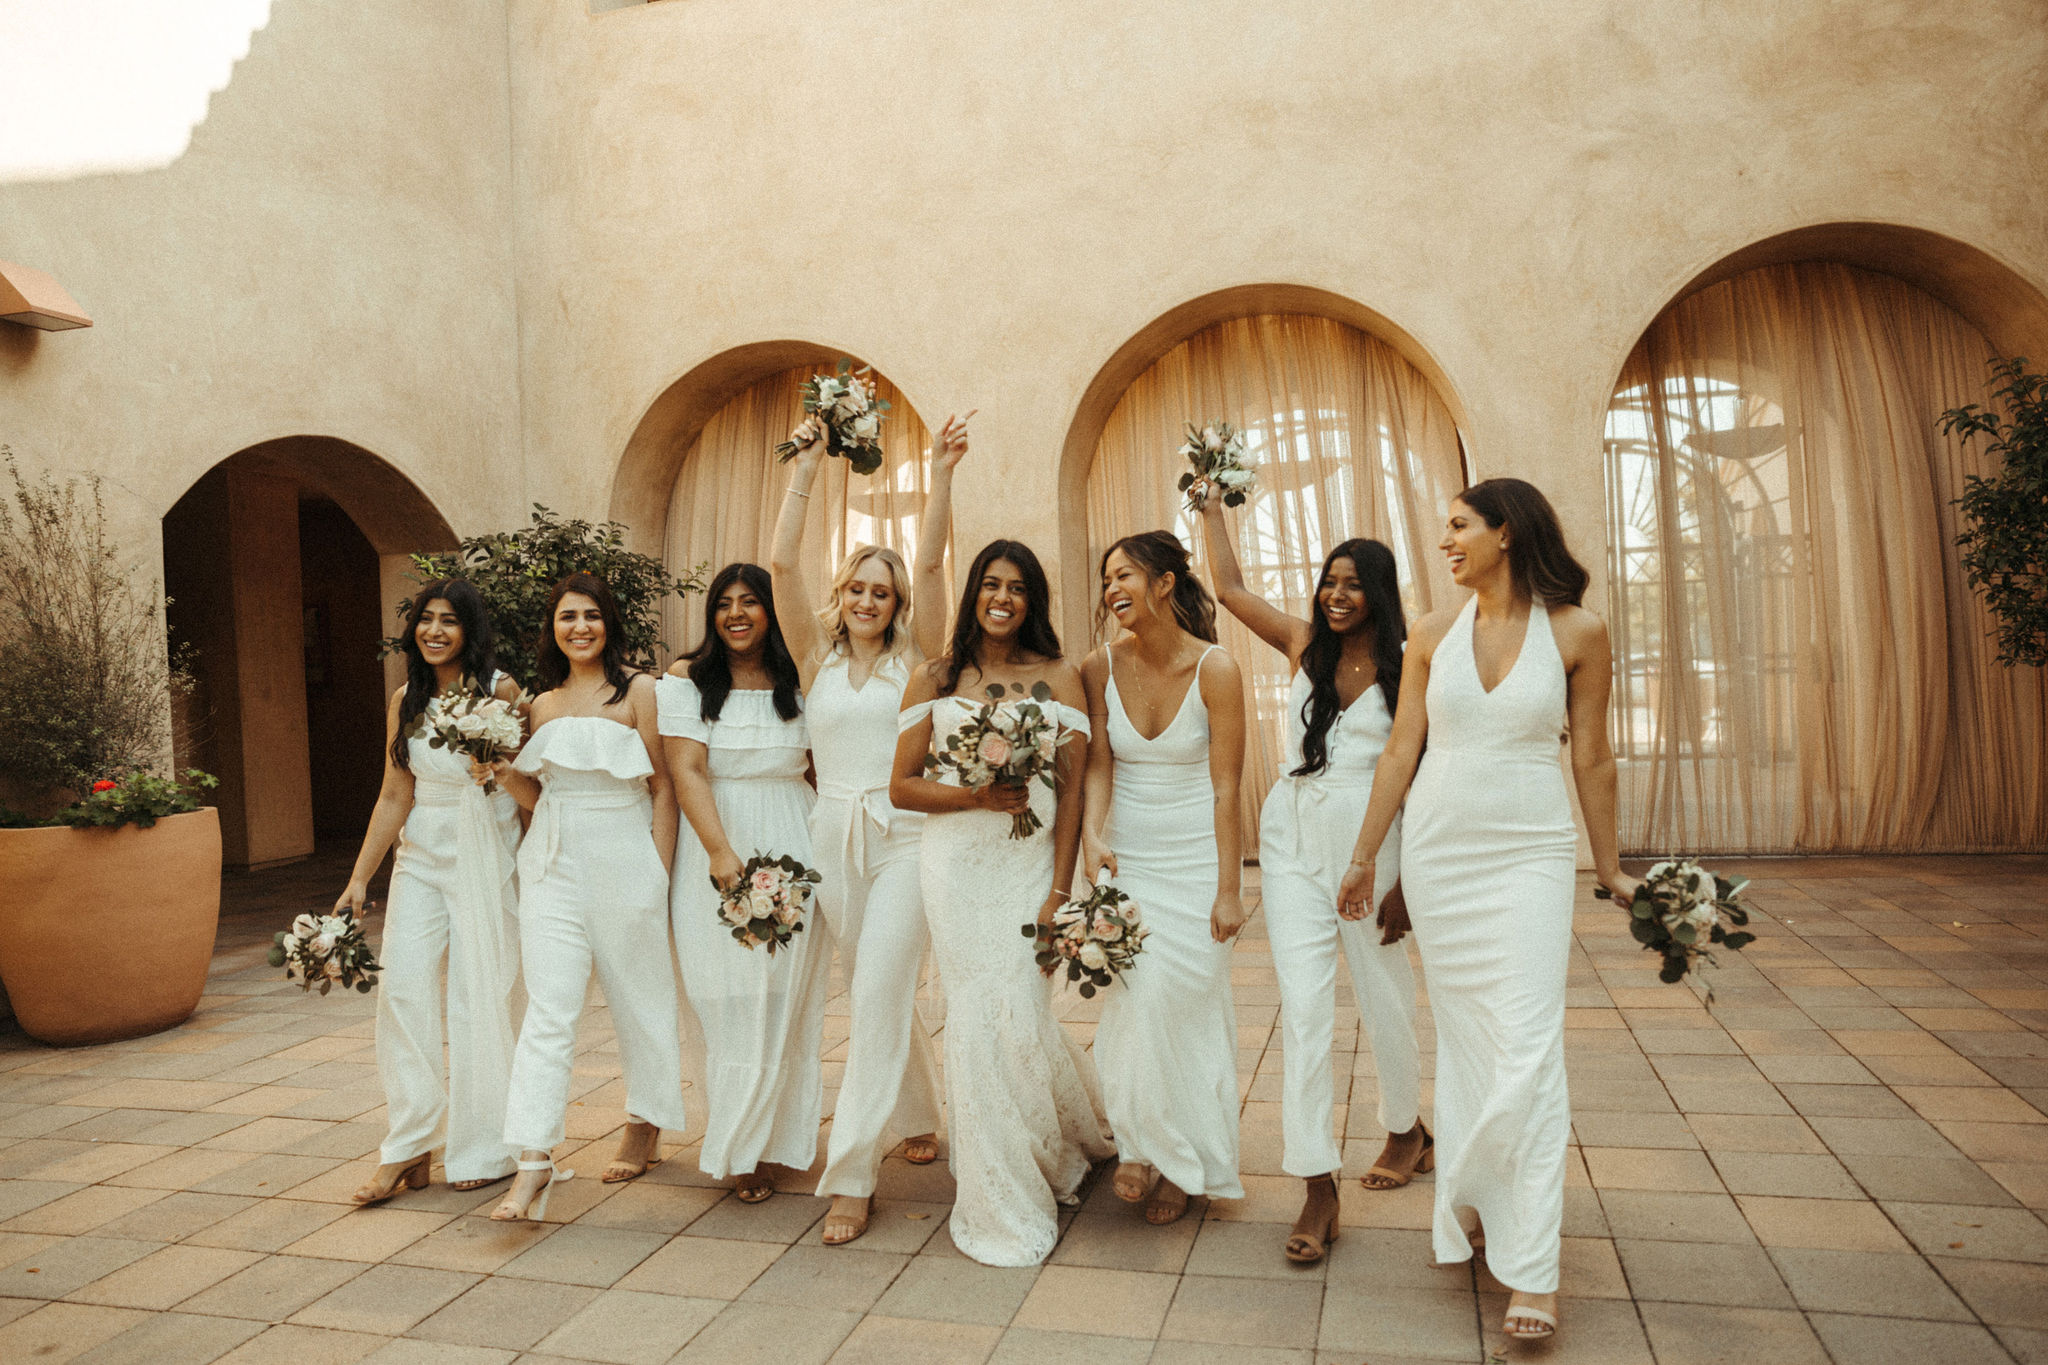 bridesmaids wearing all white jumpsuits and dresses